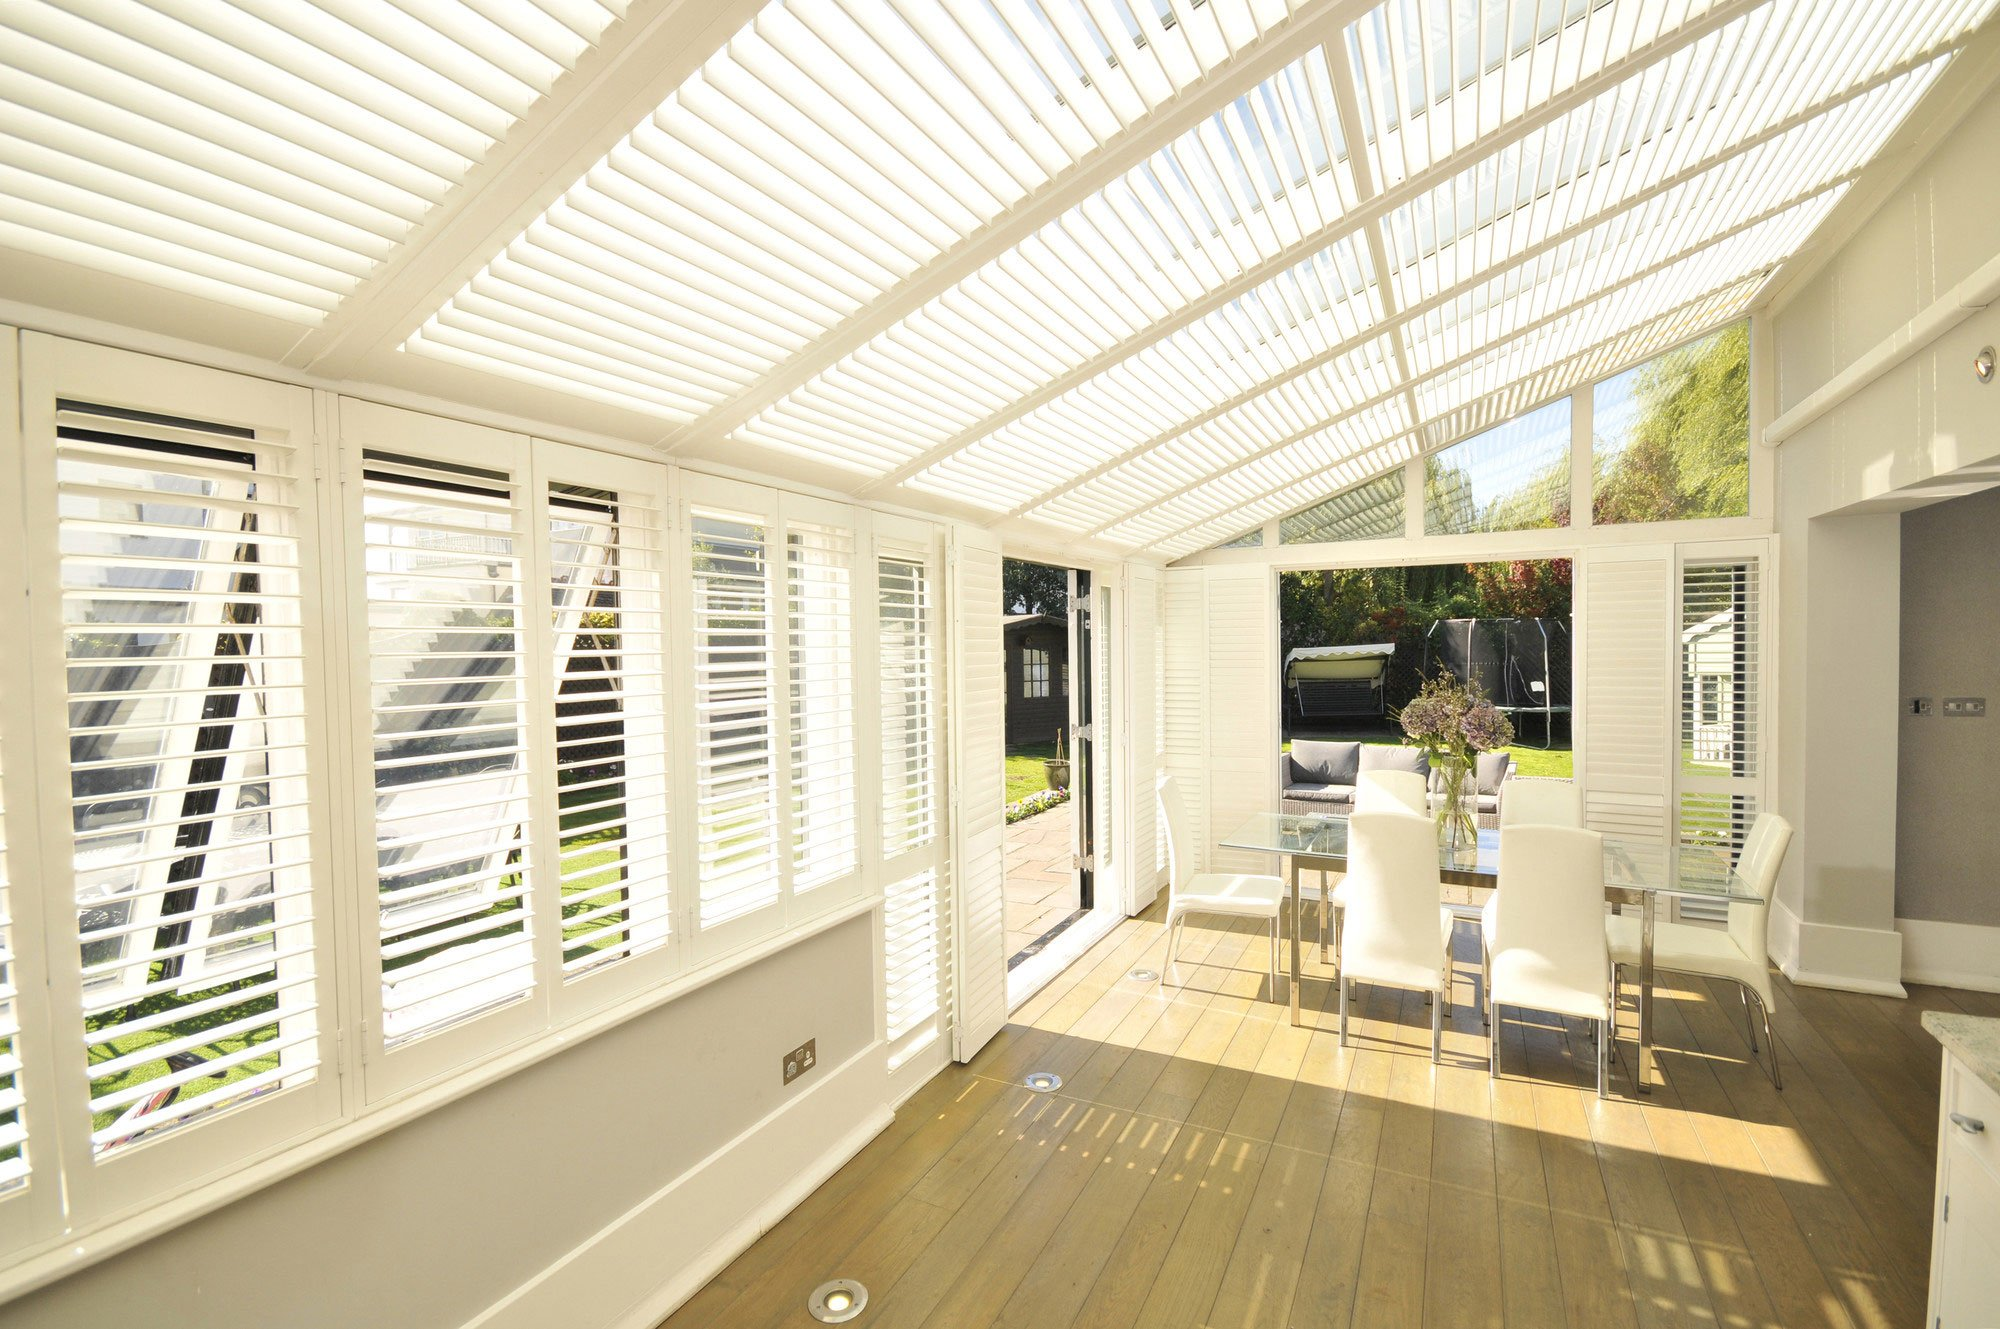 conservatory covered with blinds